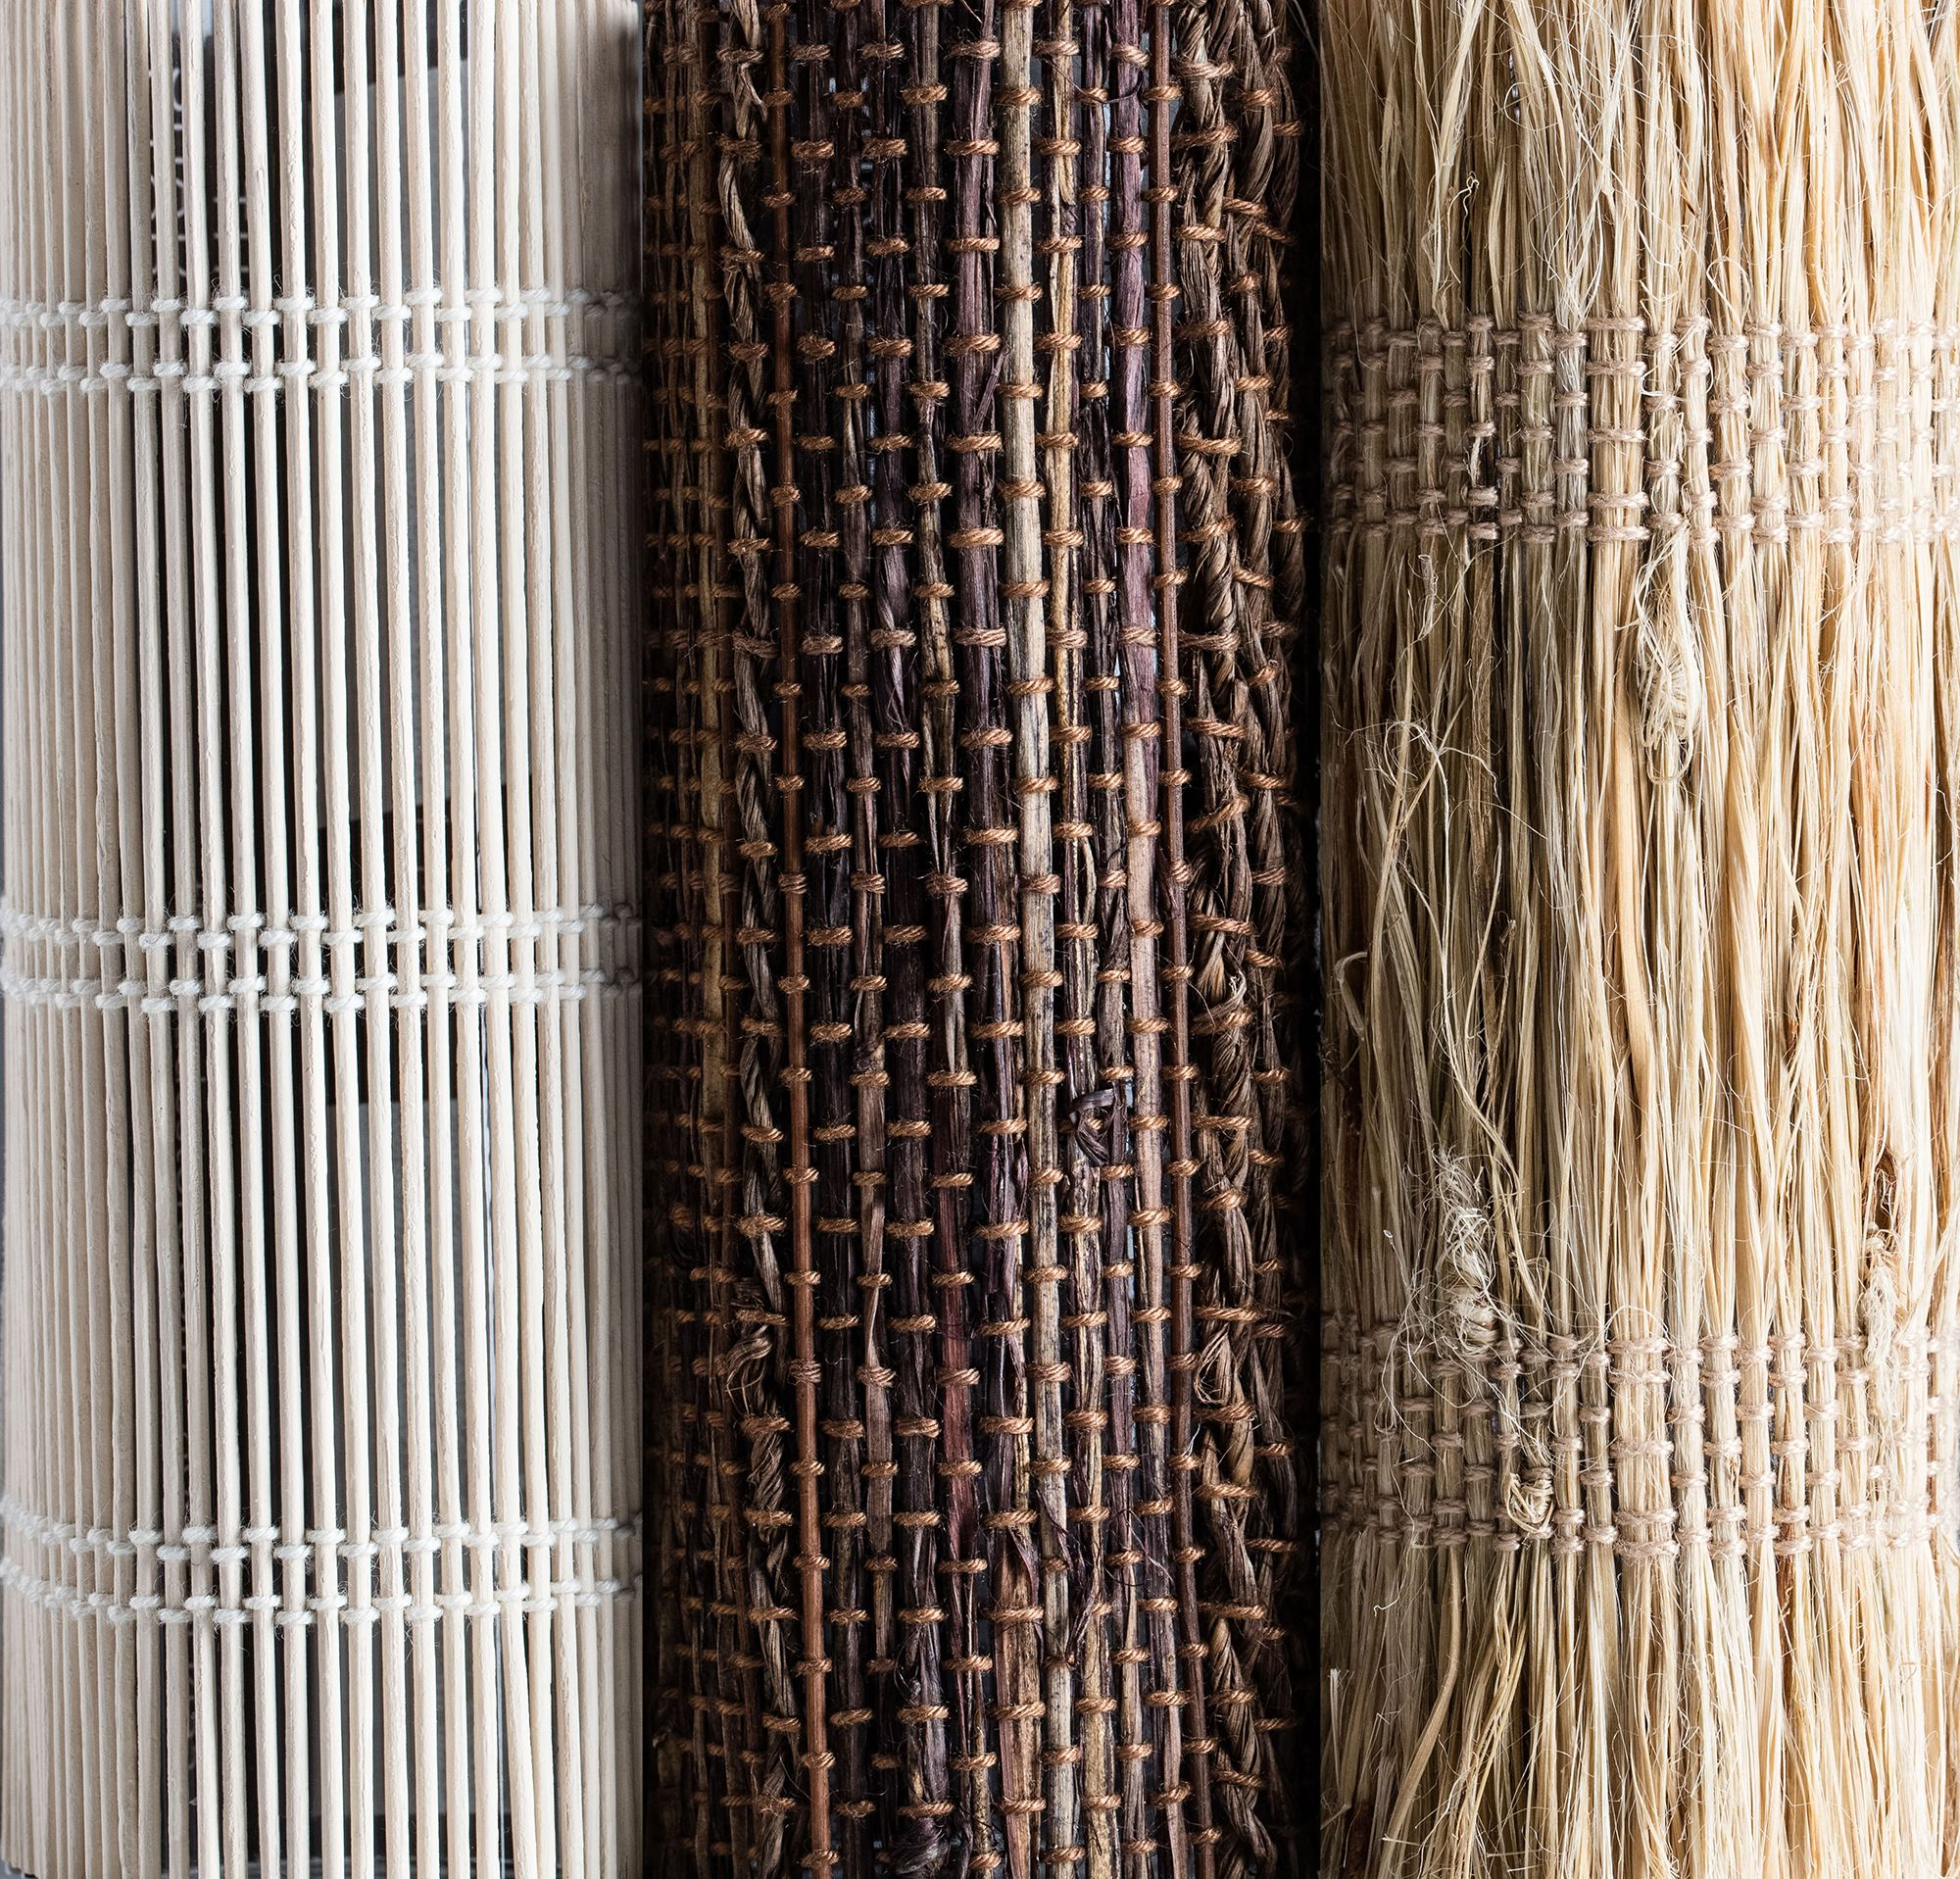 Our Bamboo + Grass material collection for Woven Wood Shades ...